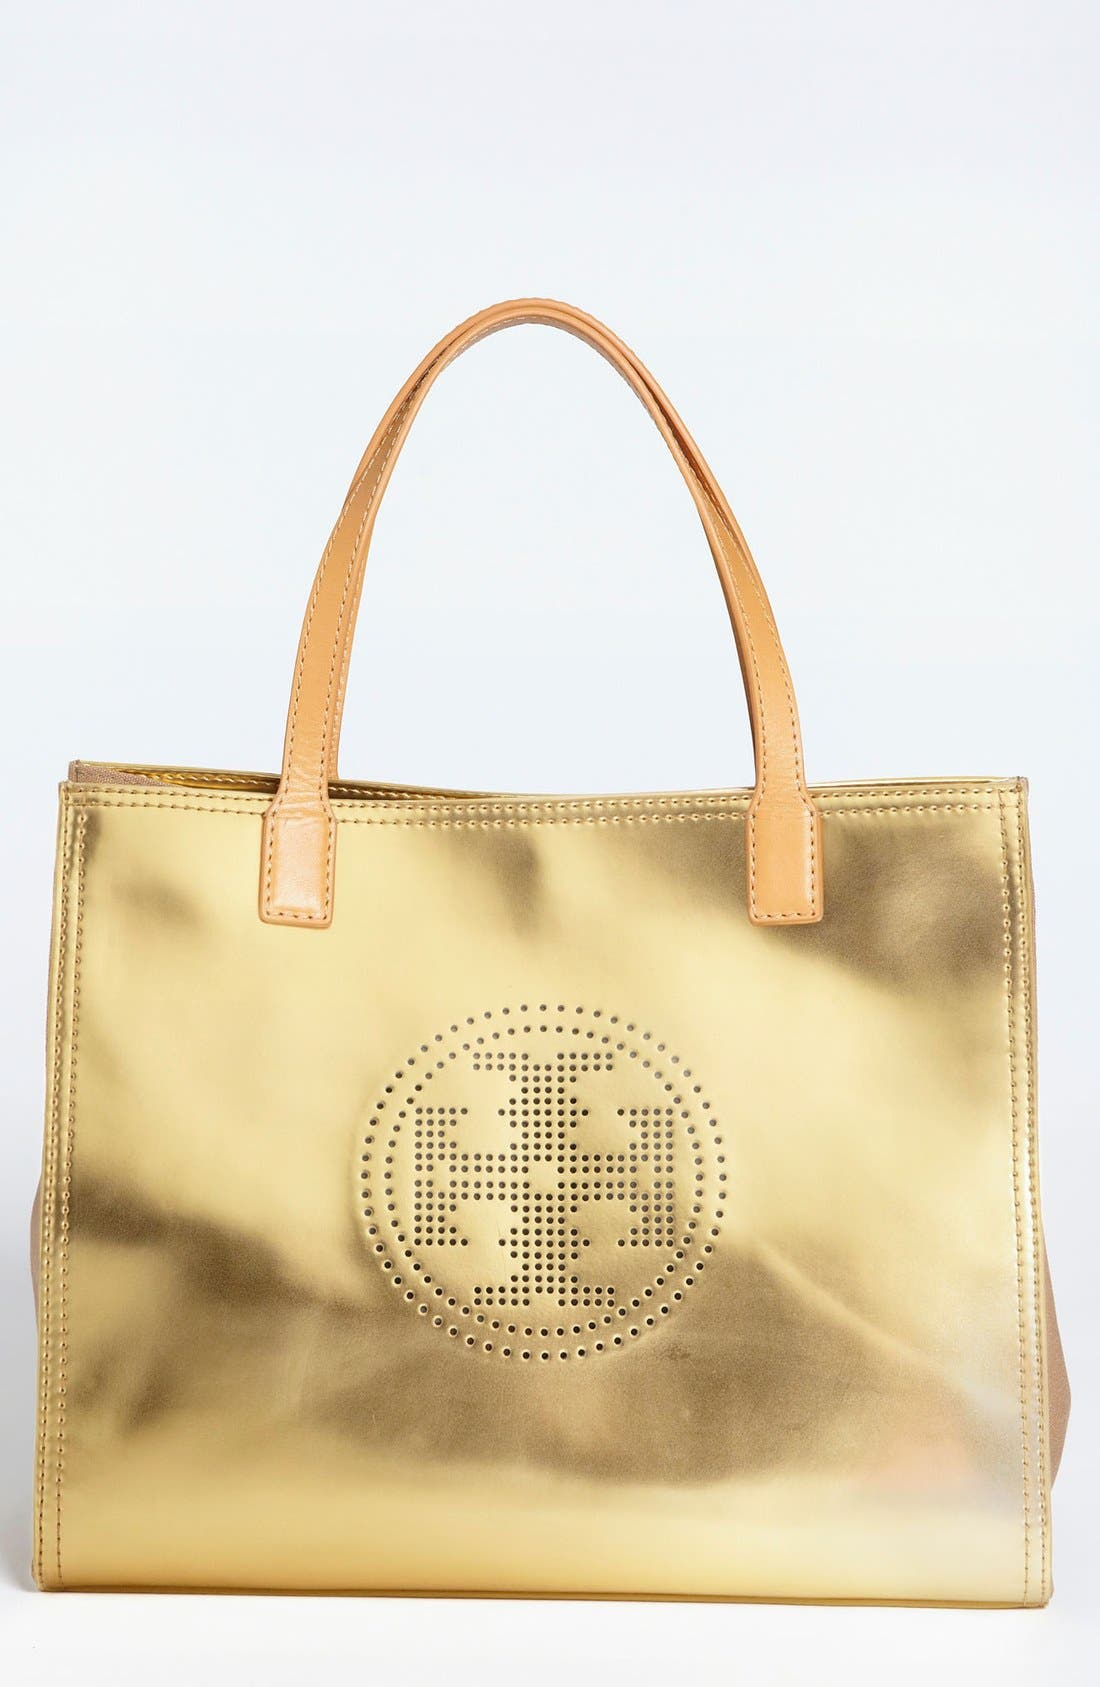 Main Image - Tory Burch 'Small' Perforated Logo Metallic Leather Tote